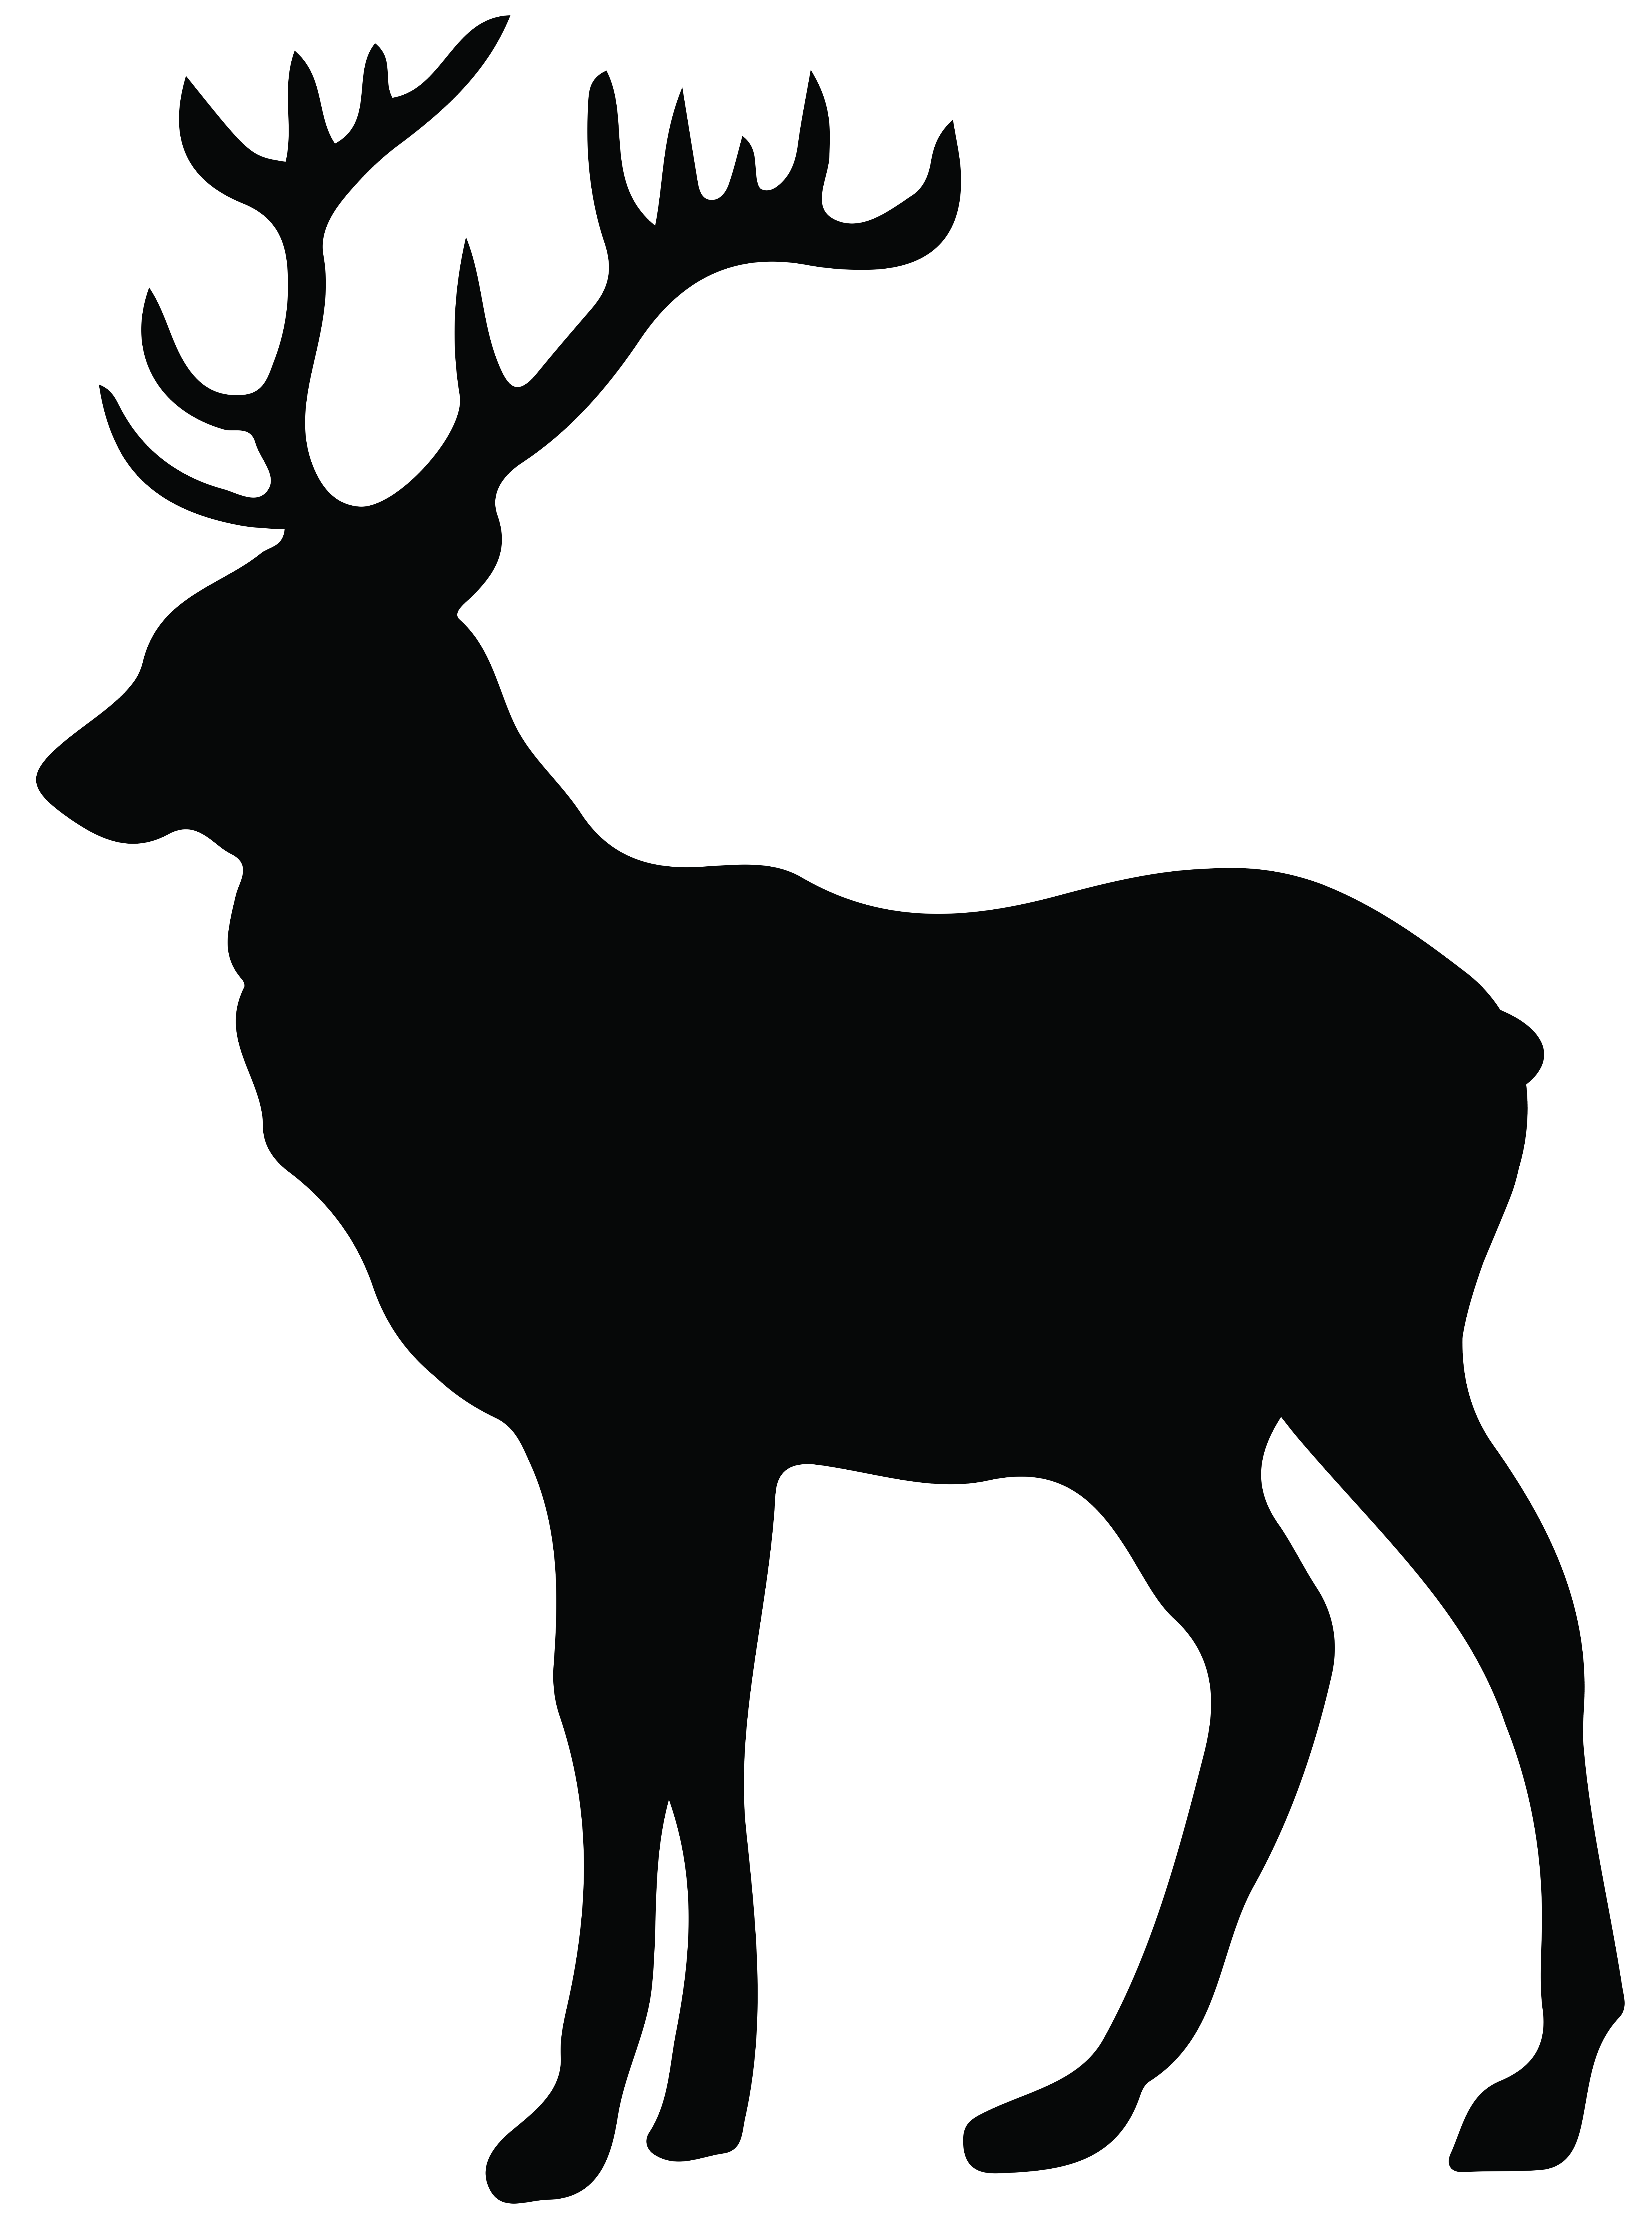 Hunting clipart stag head. Silhouette png transparent clip